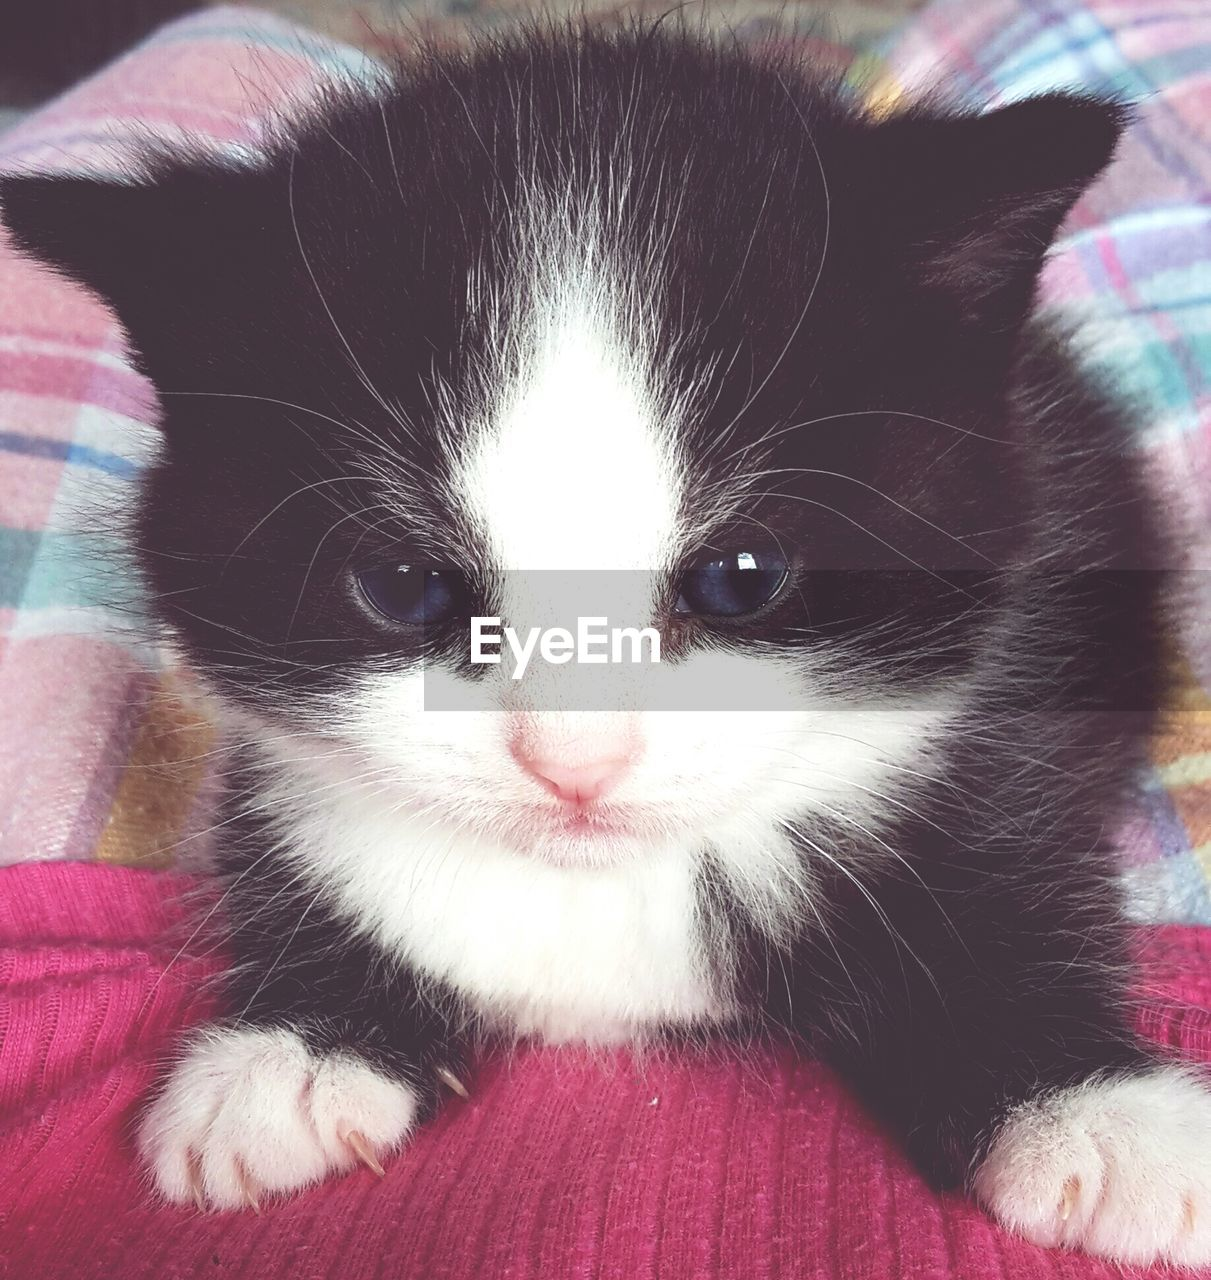 Close-up of kitten on bed